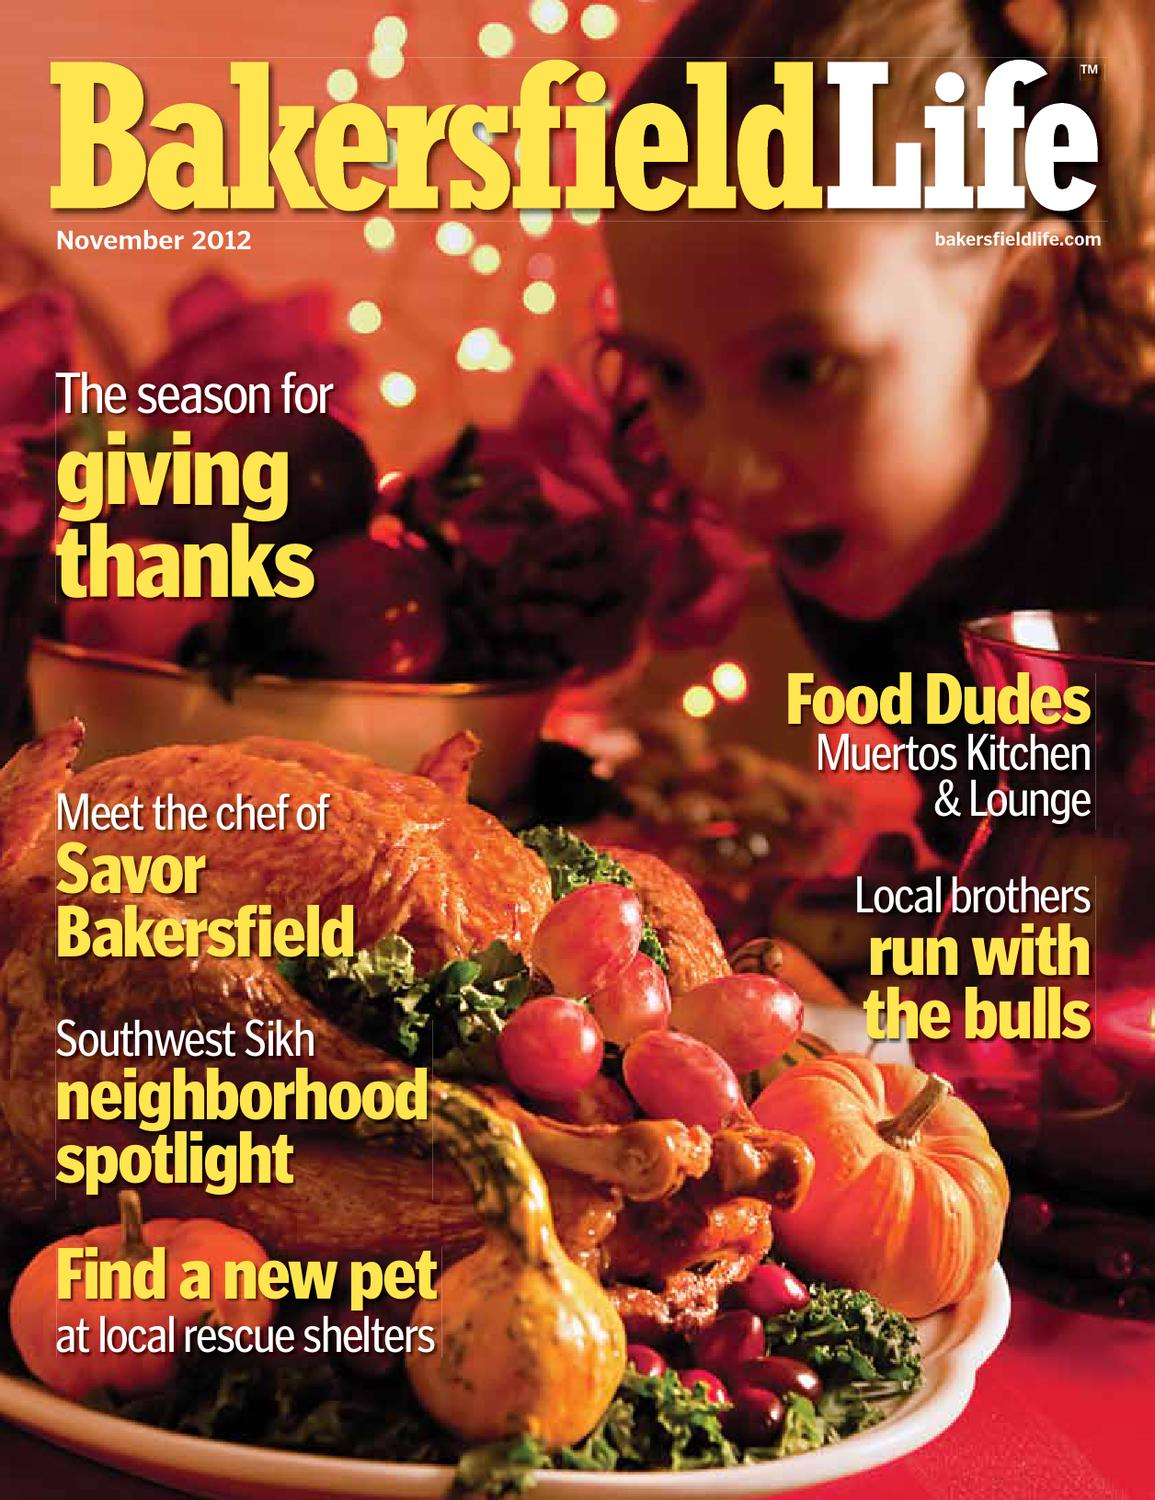 Bakersfield Life Magazine November 2012 By Tbc Media